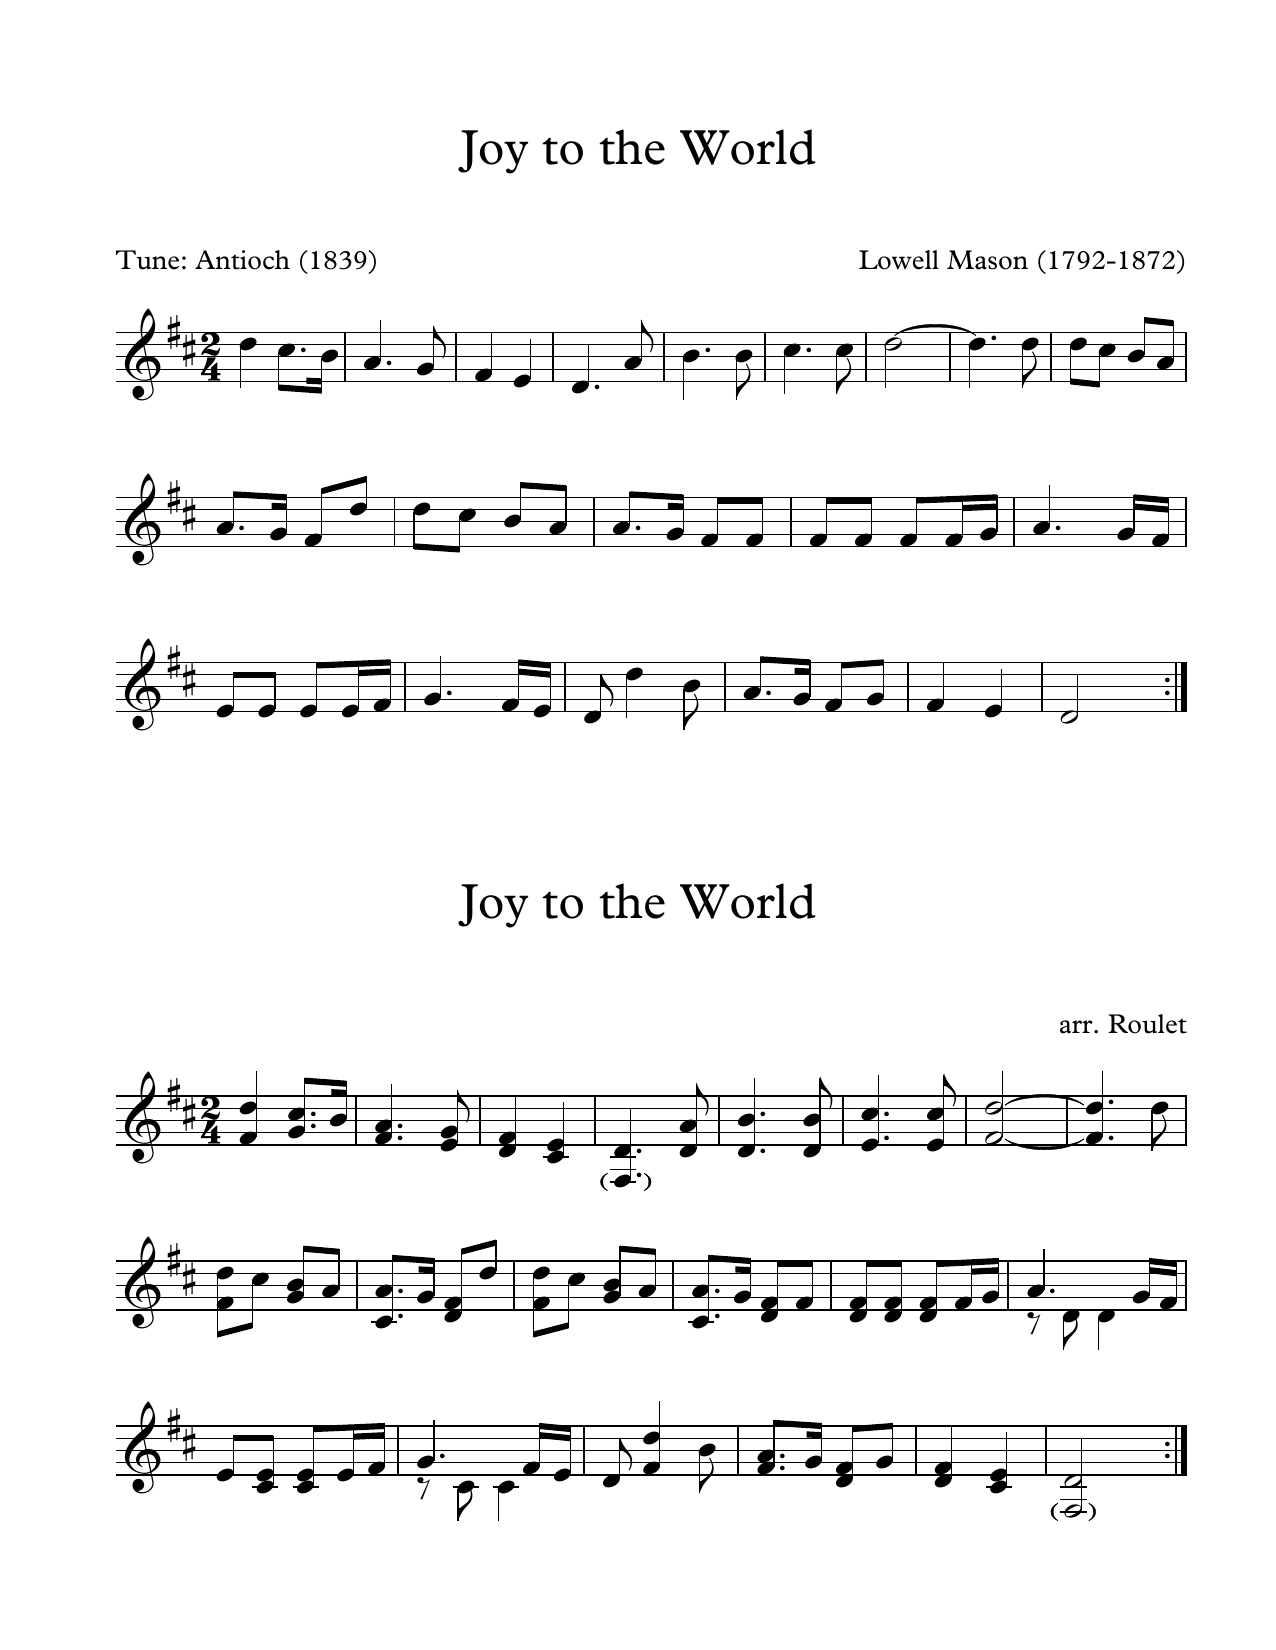 Lowell Mason Joy To The World (arr. Patrick Roulet) sheet music notes and chords. Download Printable PDF.